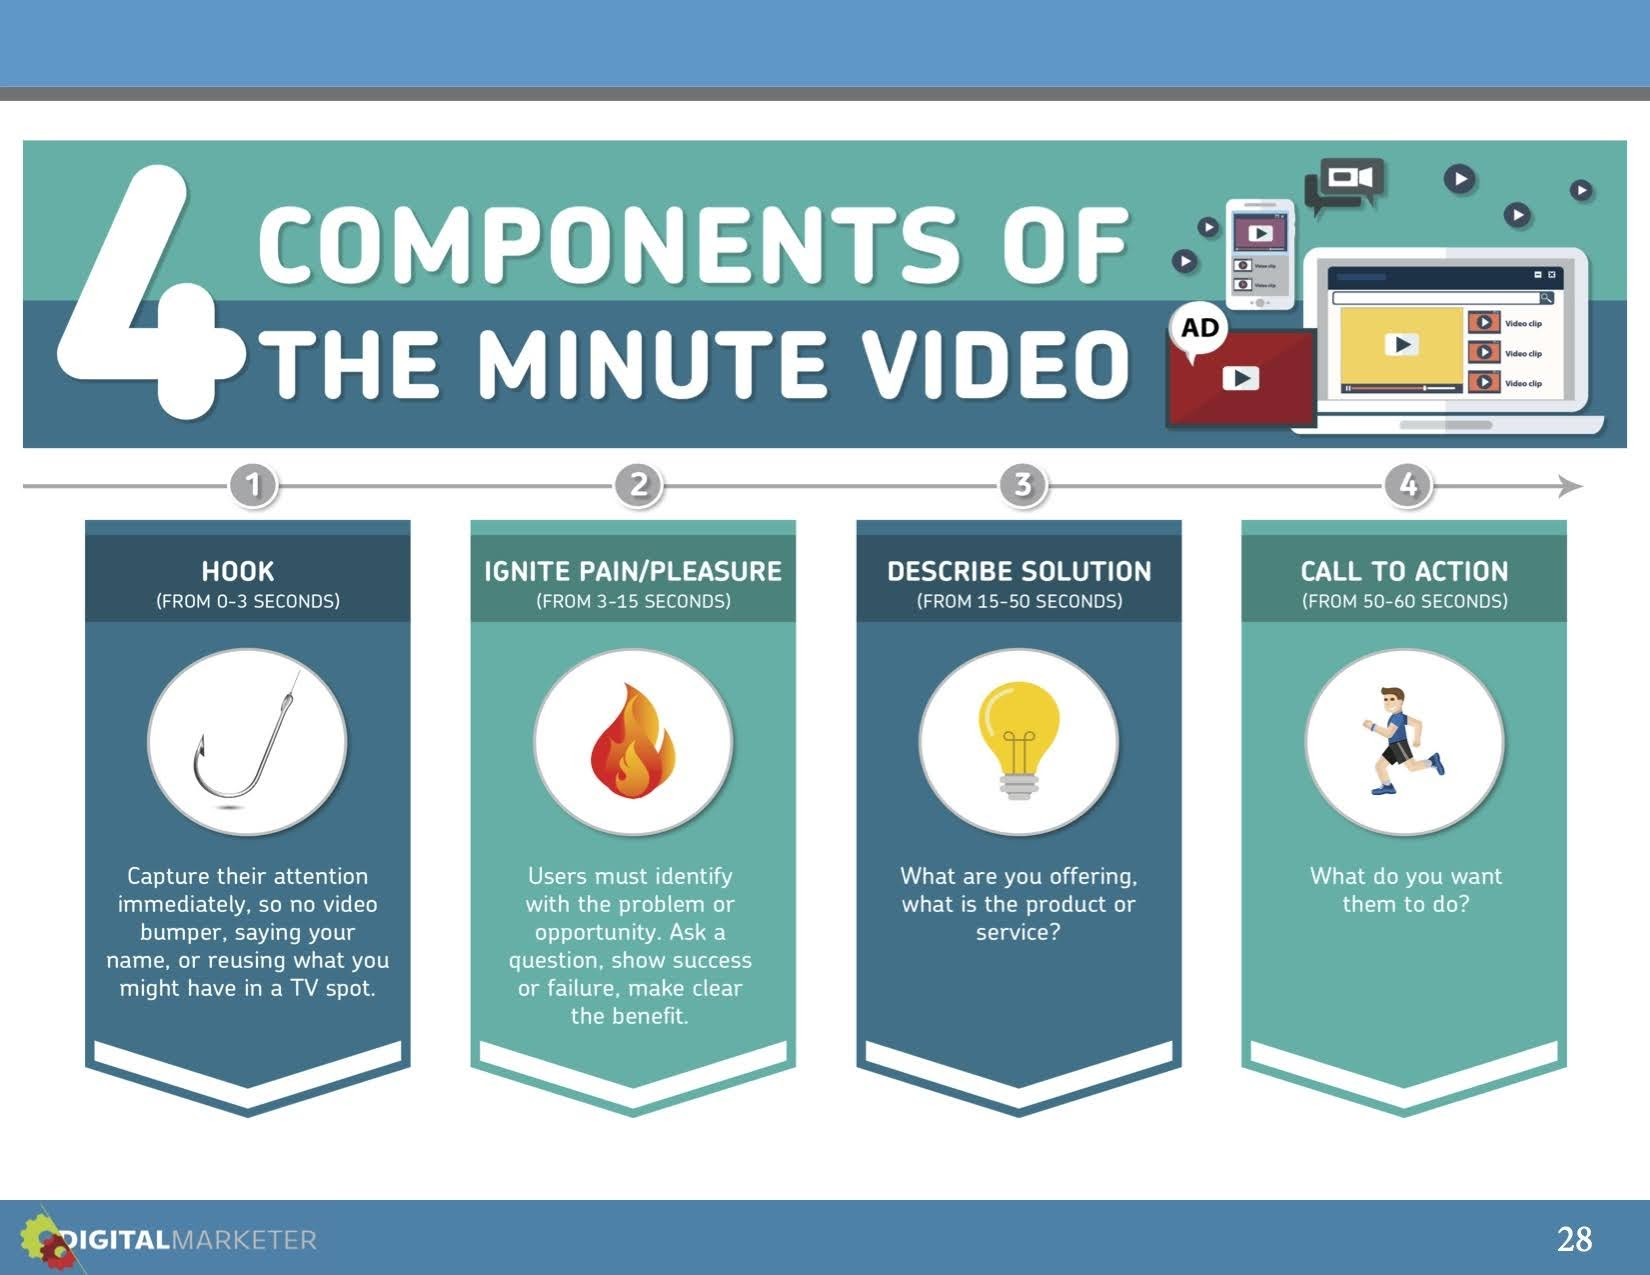 Creating a 1-minute video is as easy as piecing together these 4 components.